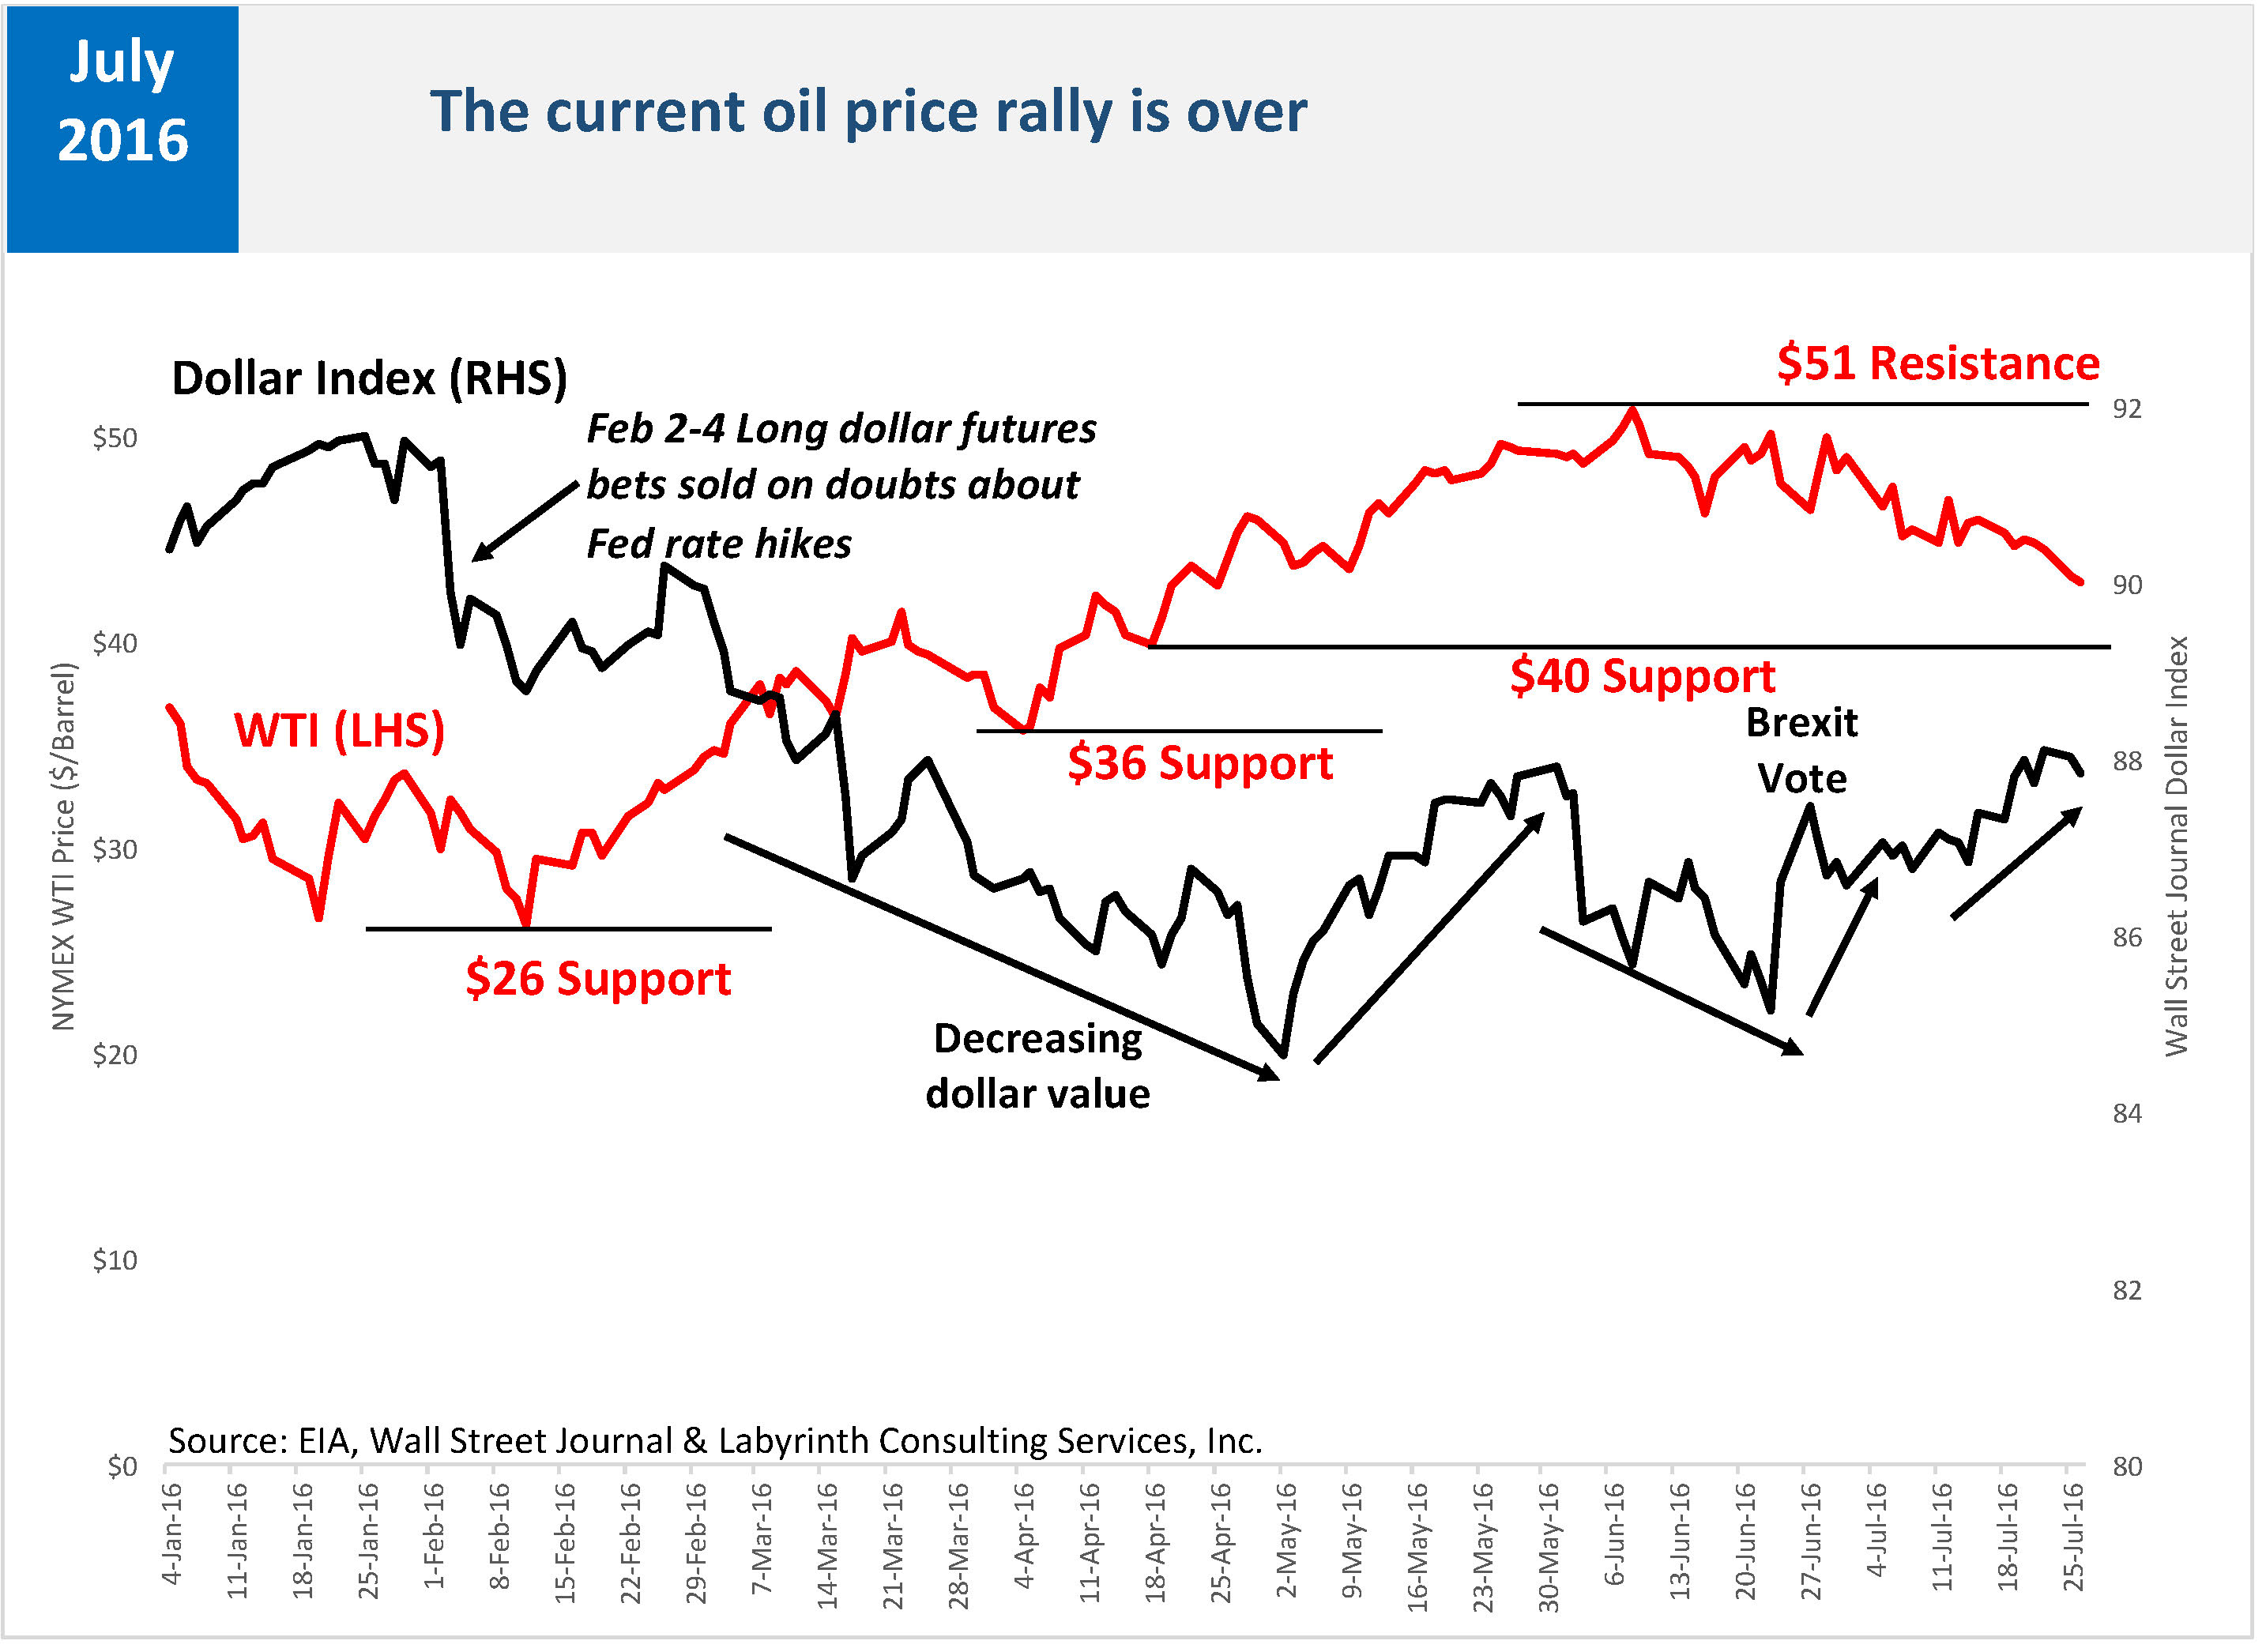 The Current Oil Price Rally Is Over